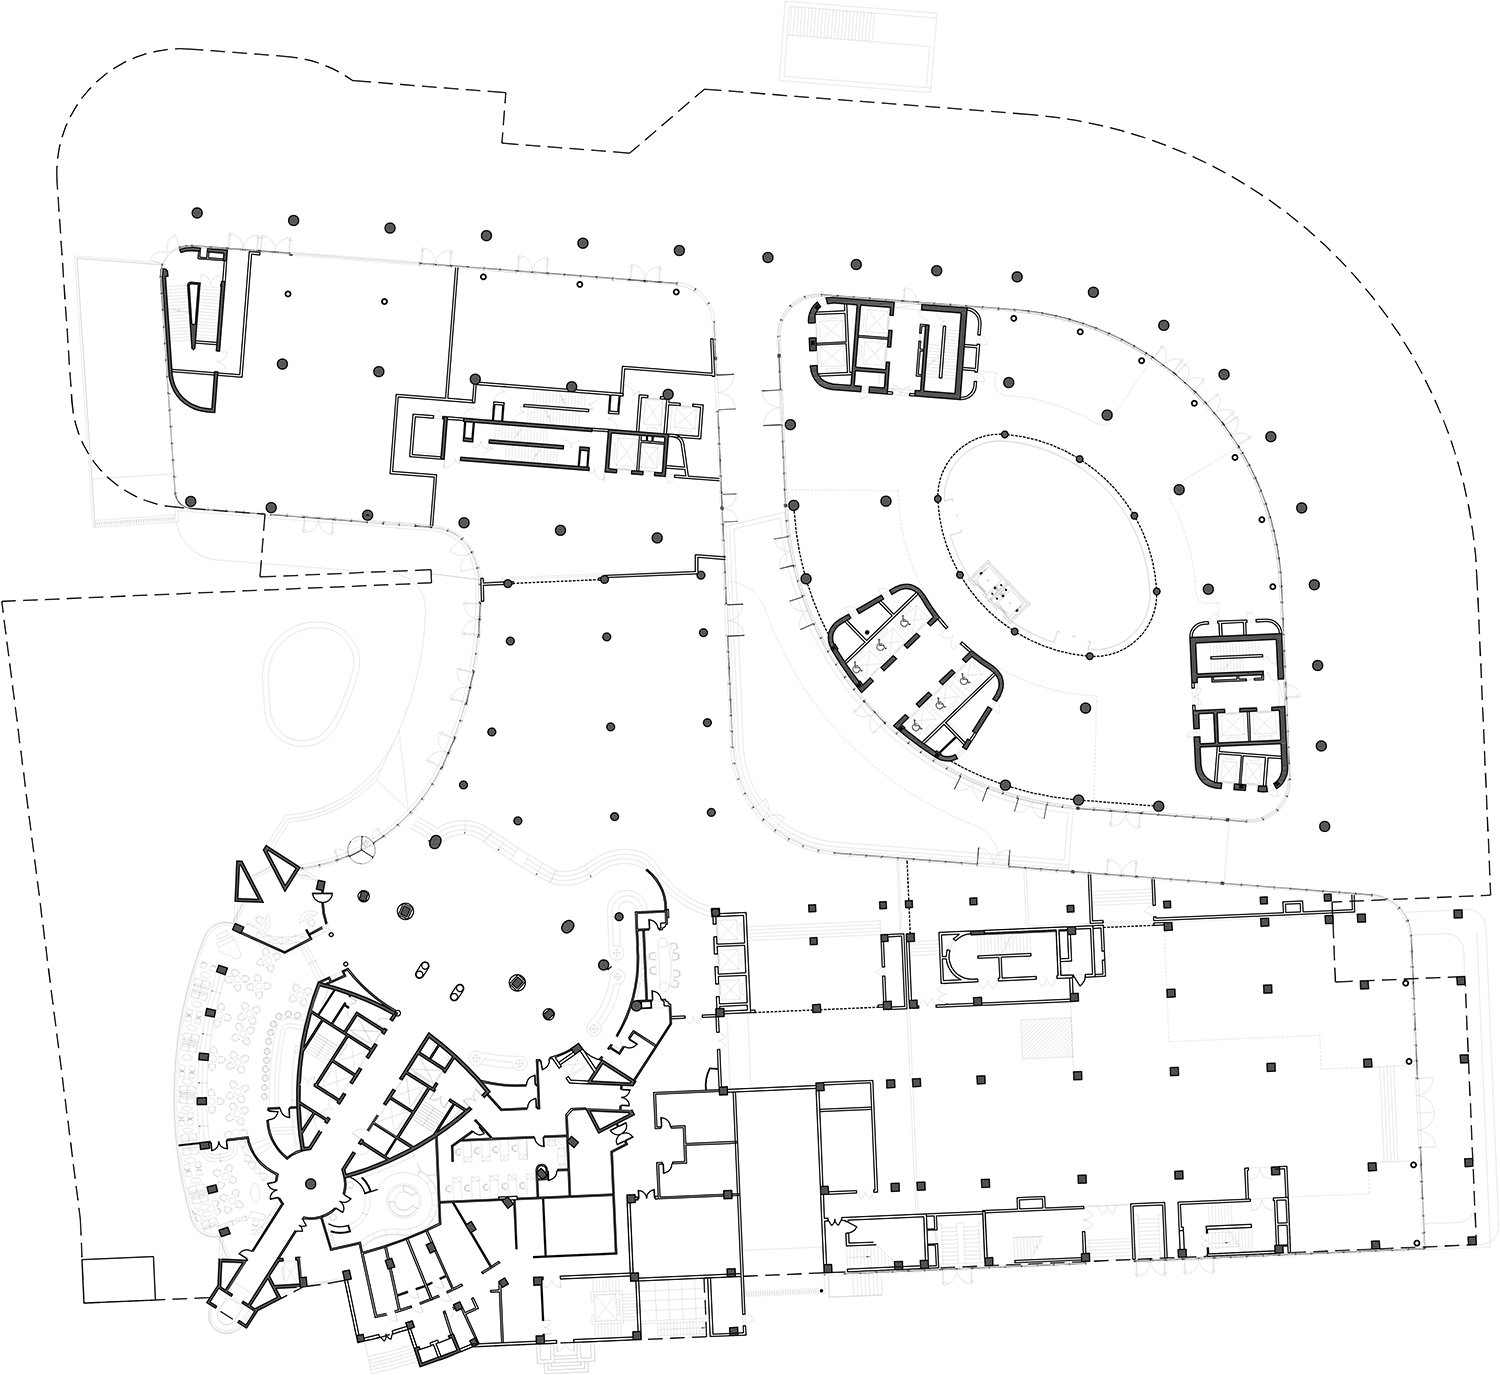 First floor Plan The Architectural Design & Research Institute of Zhejiang University; Architects von Gerkan, Marg and Partners (gmp)}